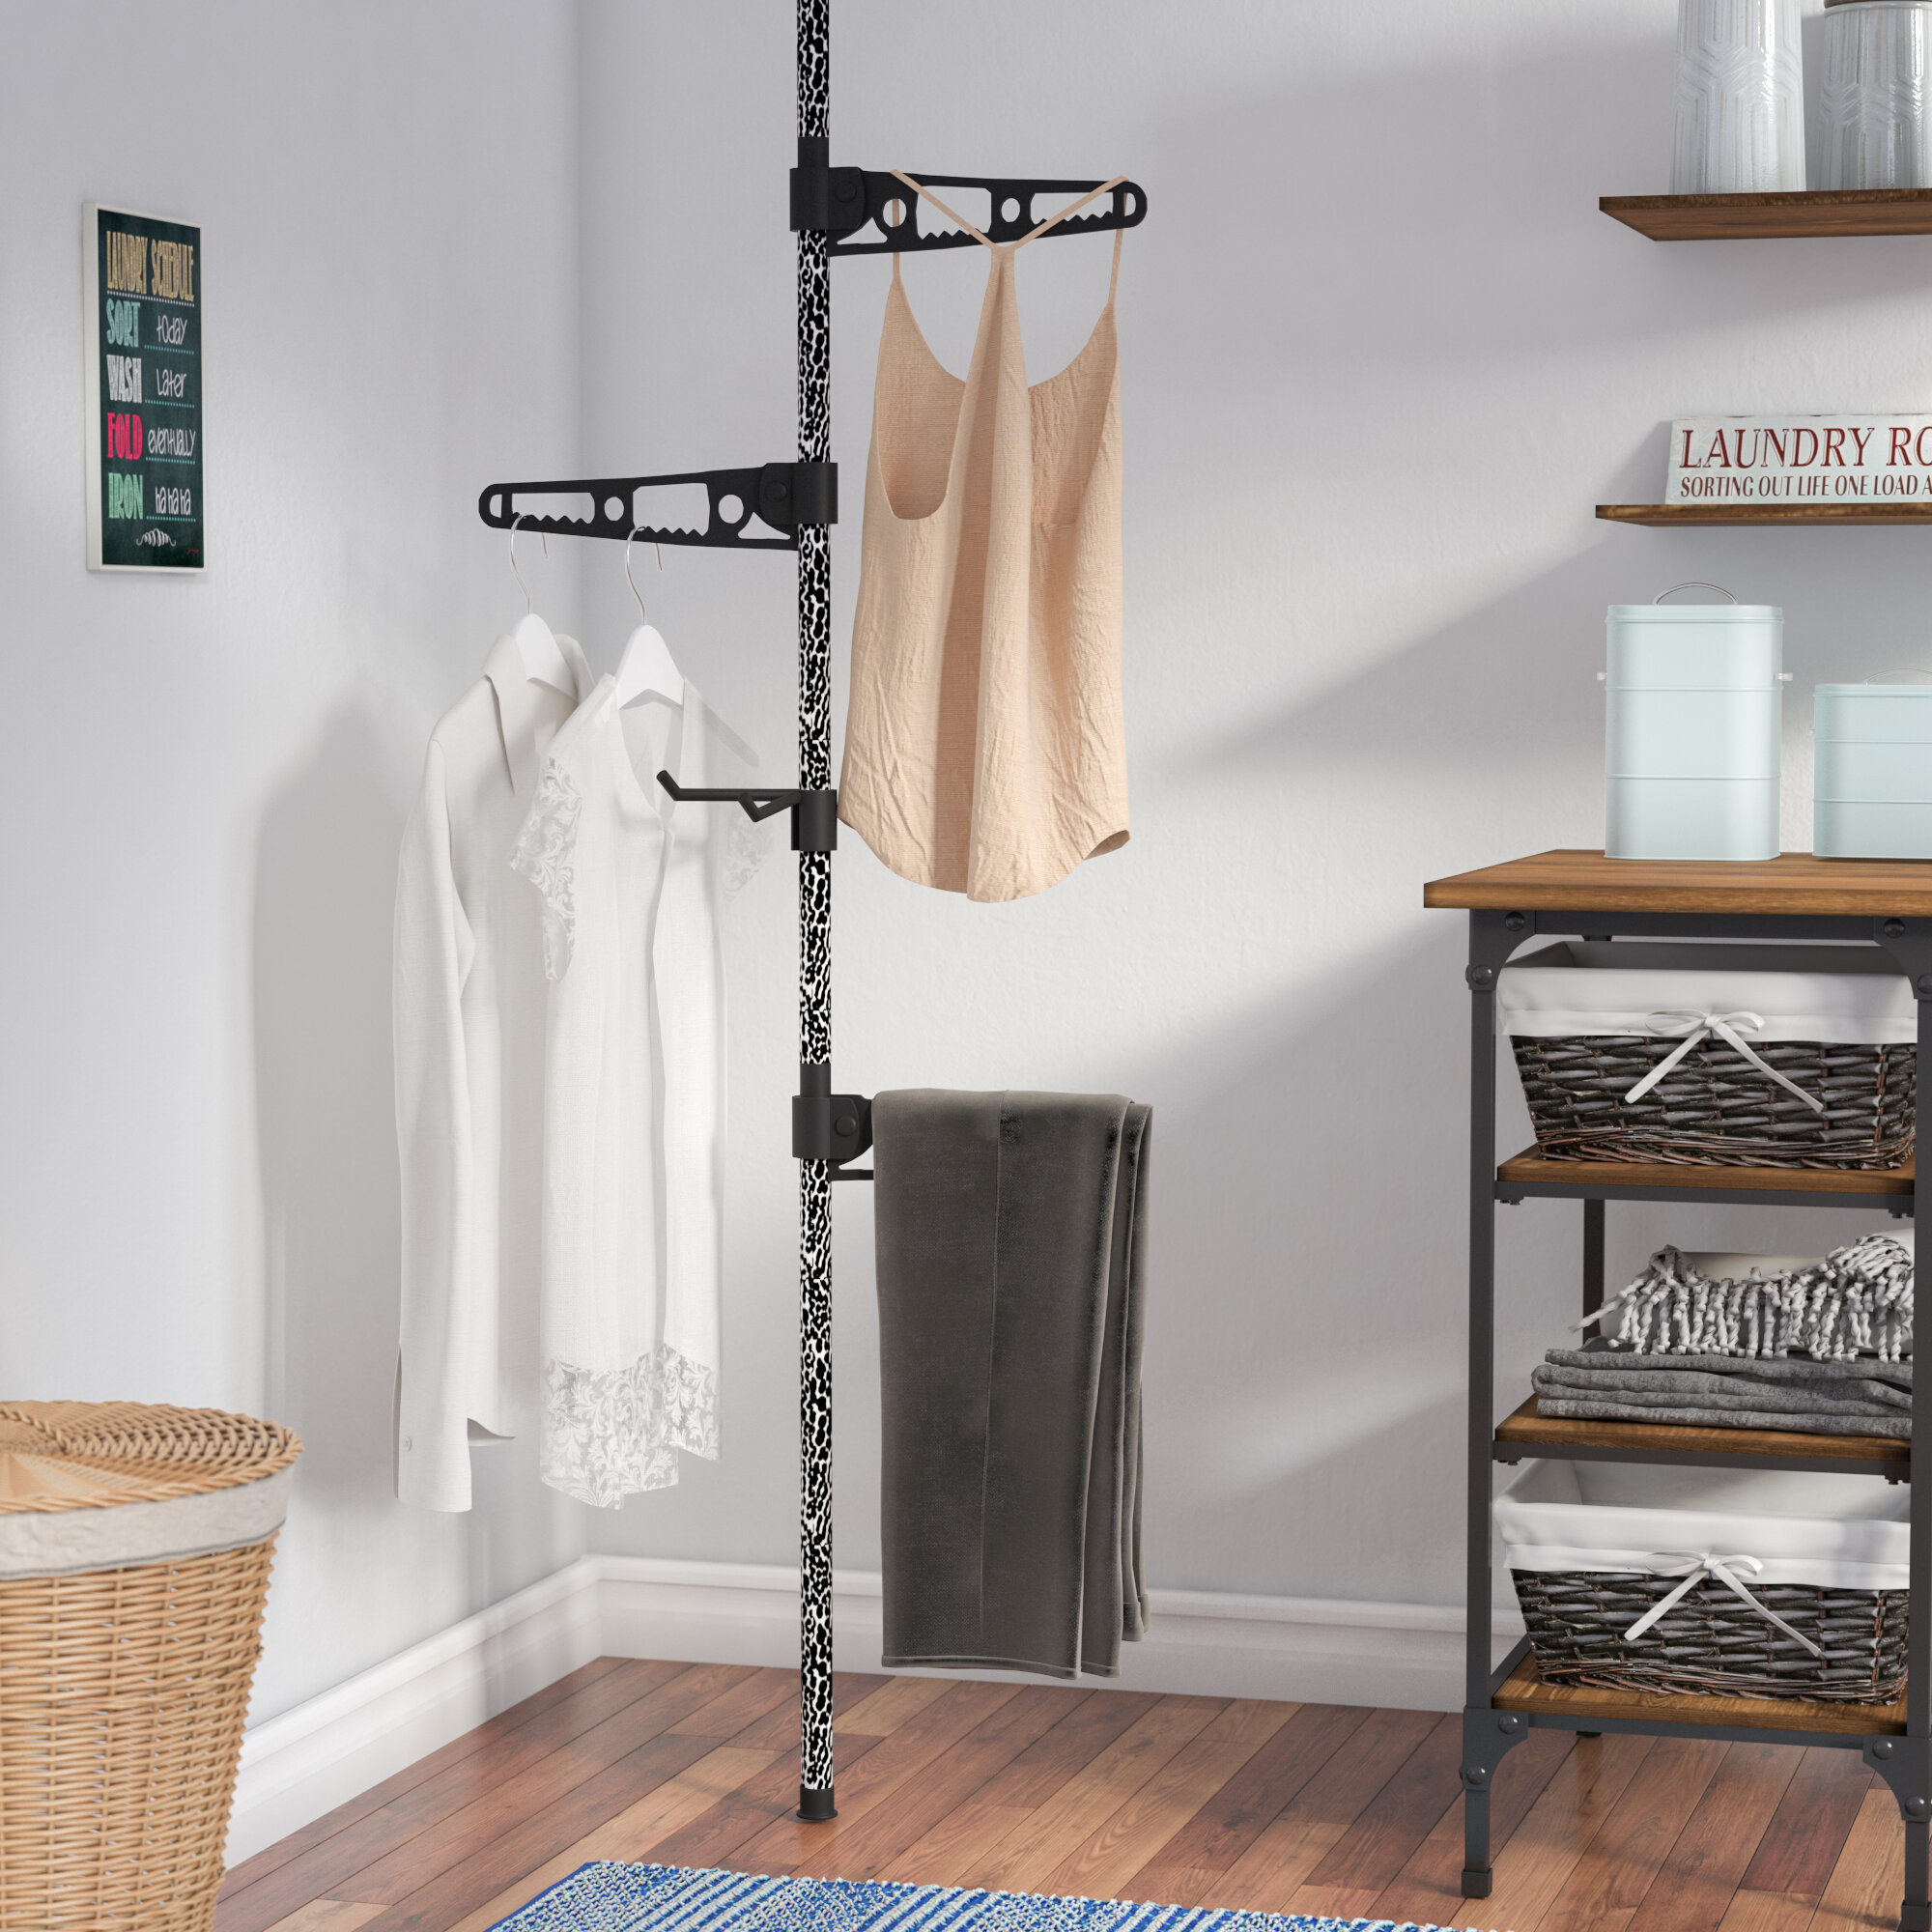 Towel Storage Set of 2 Radiator Clothes Airers Iron White /& Grey Laundry Drying Rails M/&W Radiators Clothes Hanger Compact Clothing Drying Rack